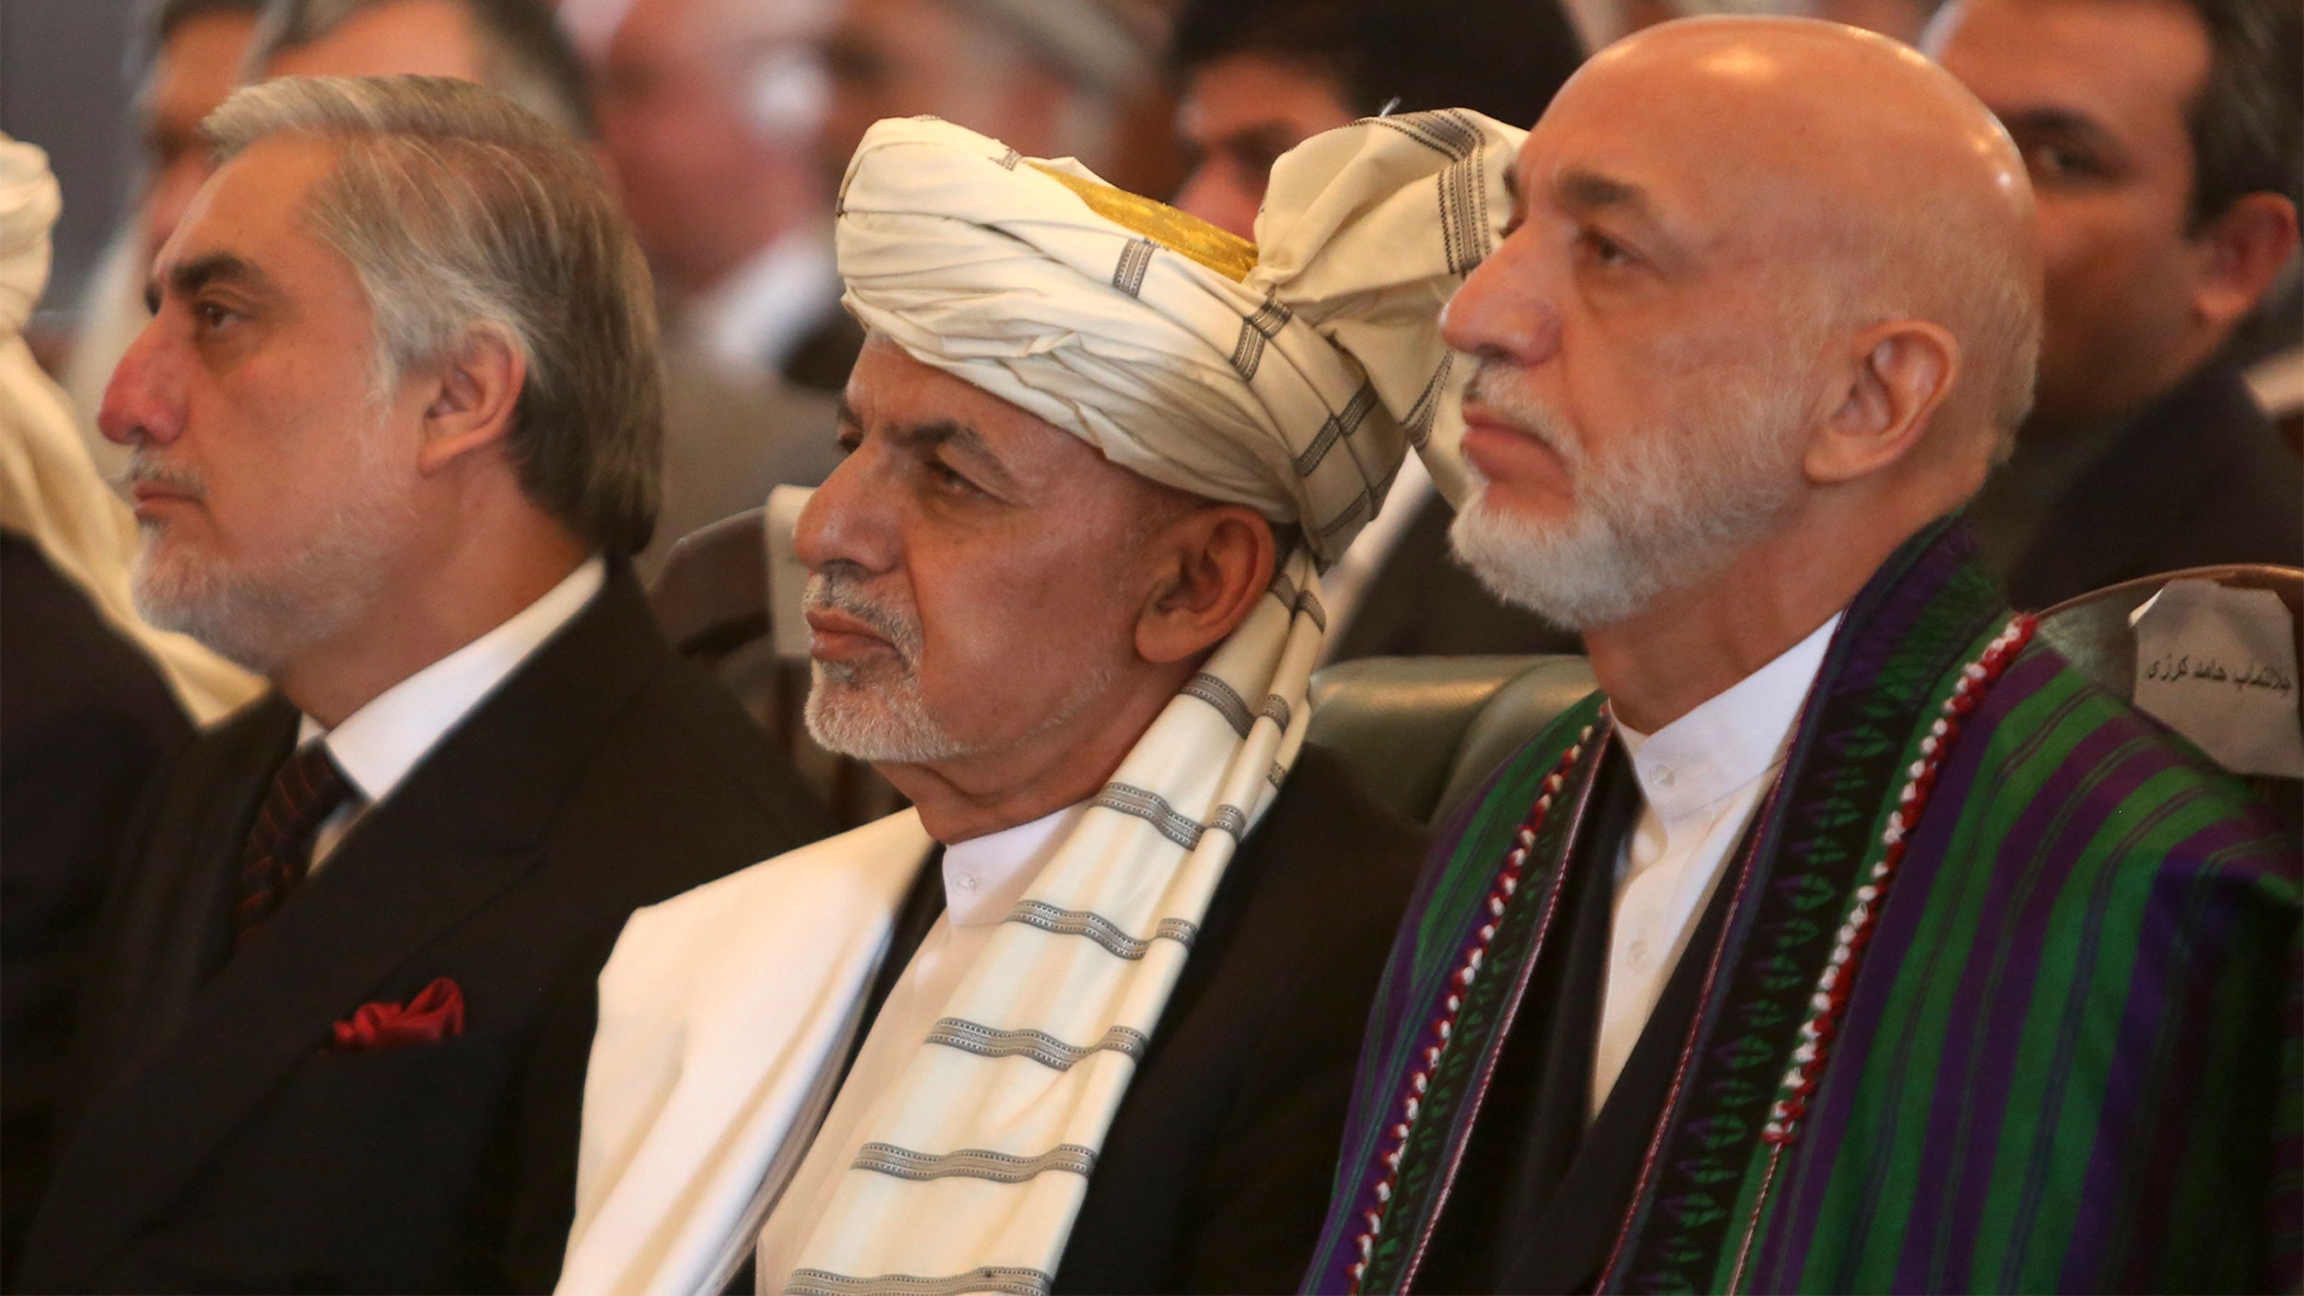 Afghan President Ashraf Ghani, center, former President Hamid Karzai, right, and Chief Executive Abdullah Abdullah, left, watch the live broadcast of Gulbuddin Hekmatyar after the signing of a peace treaty at the presidential palace in Kabul, Afghanistan